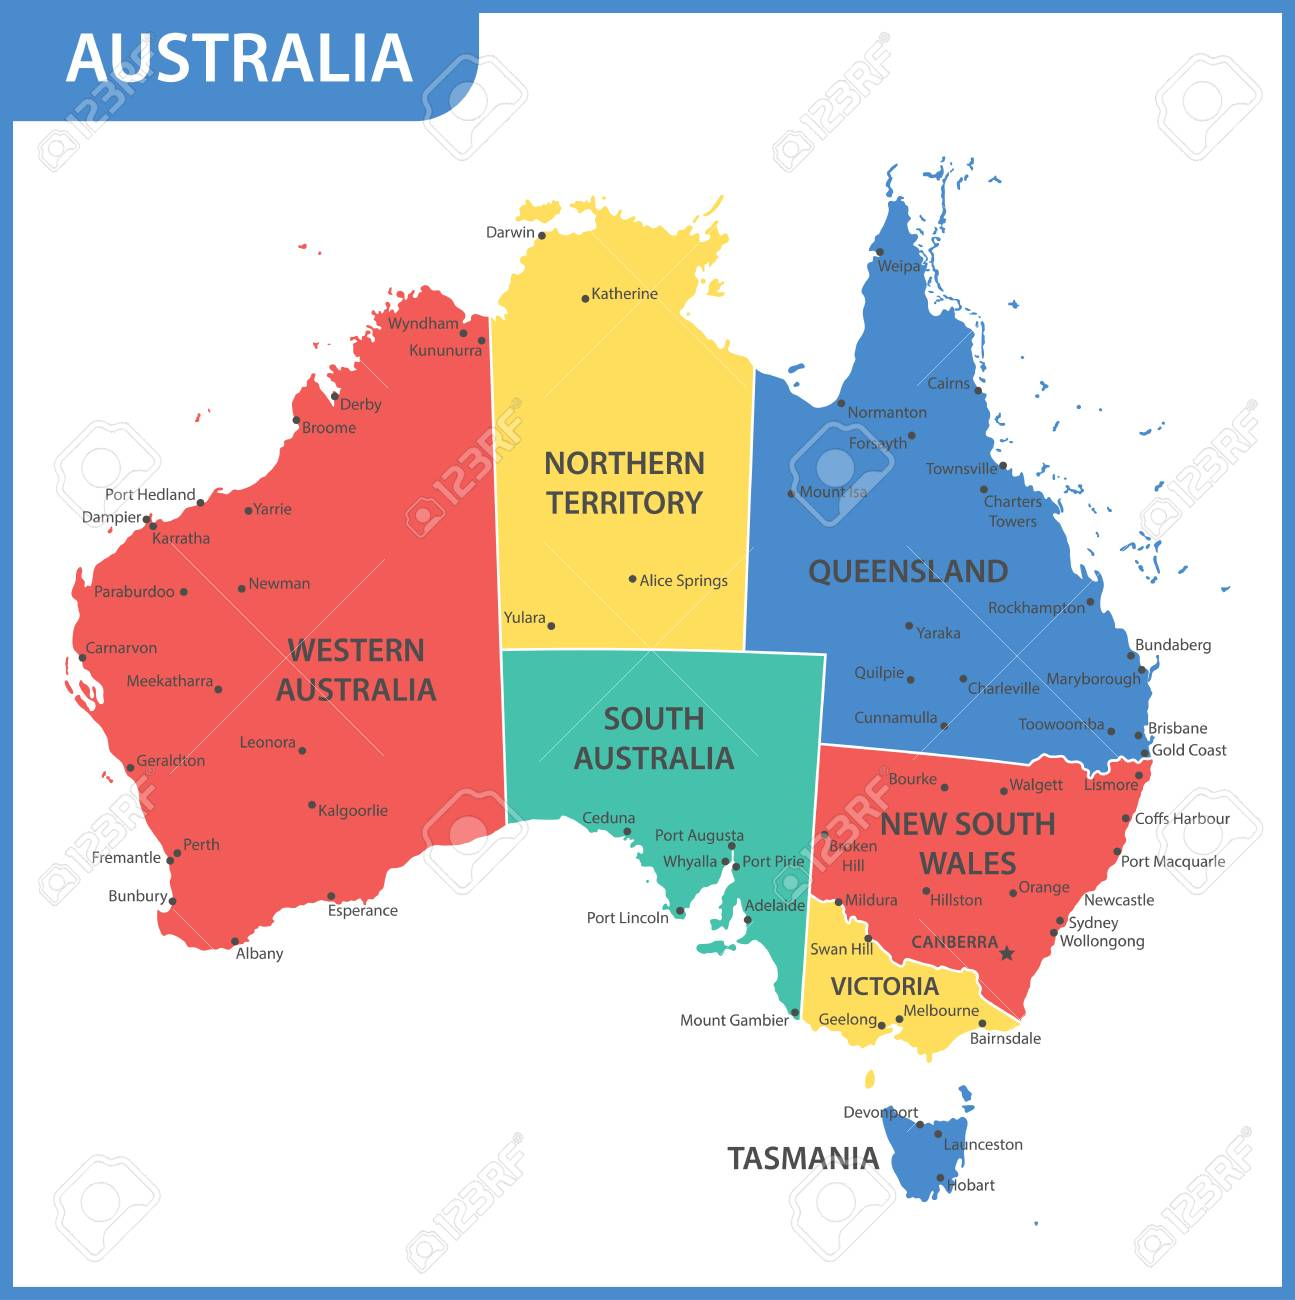 Map Of Australia With States And Capitals.The Detailed Map Of The Australia With Regions Or States And